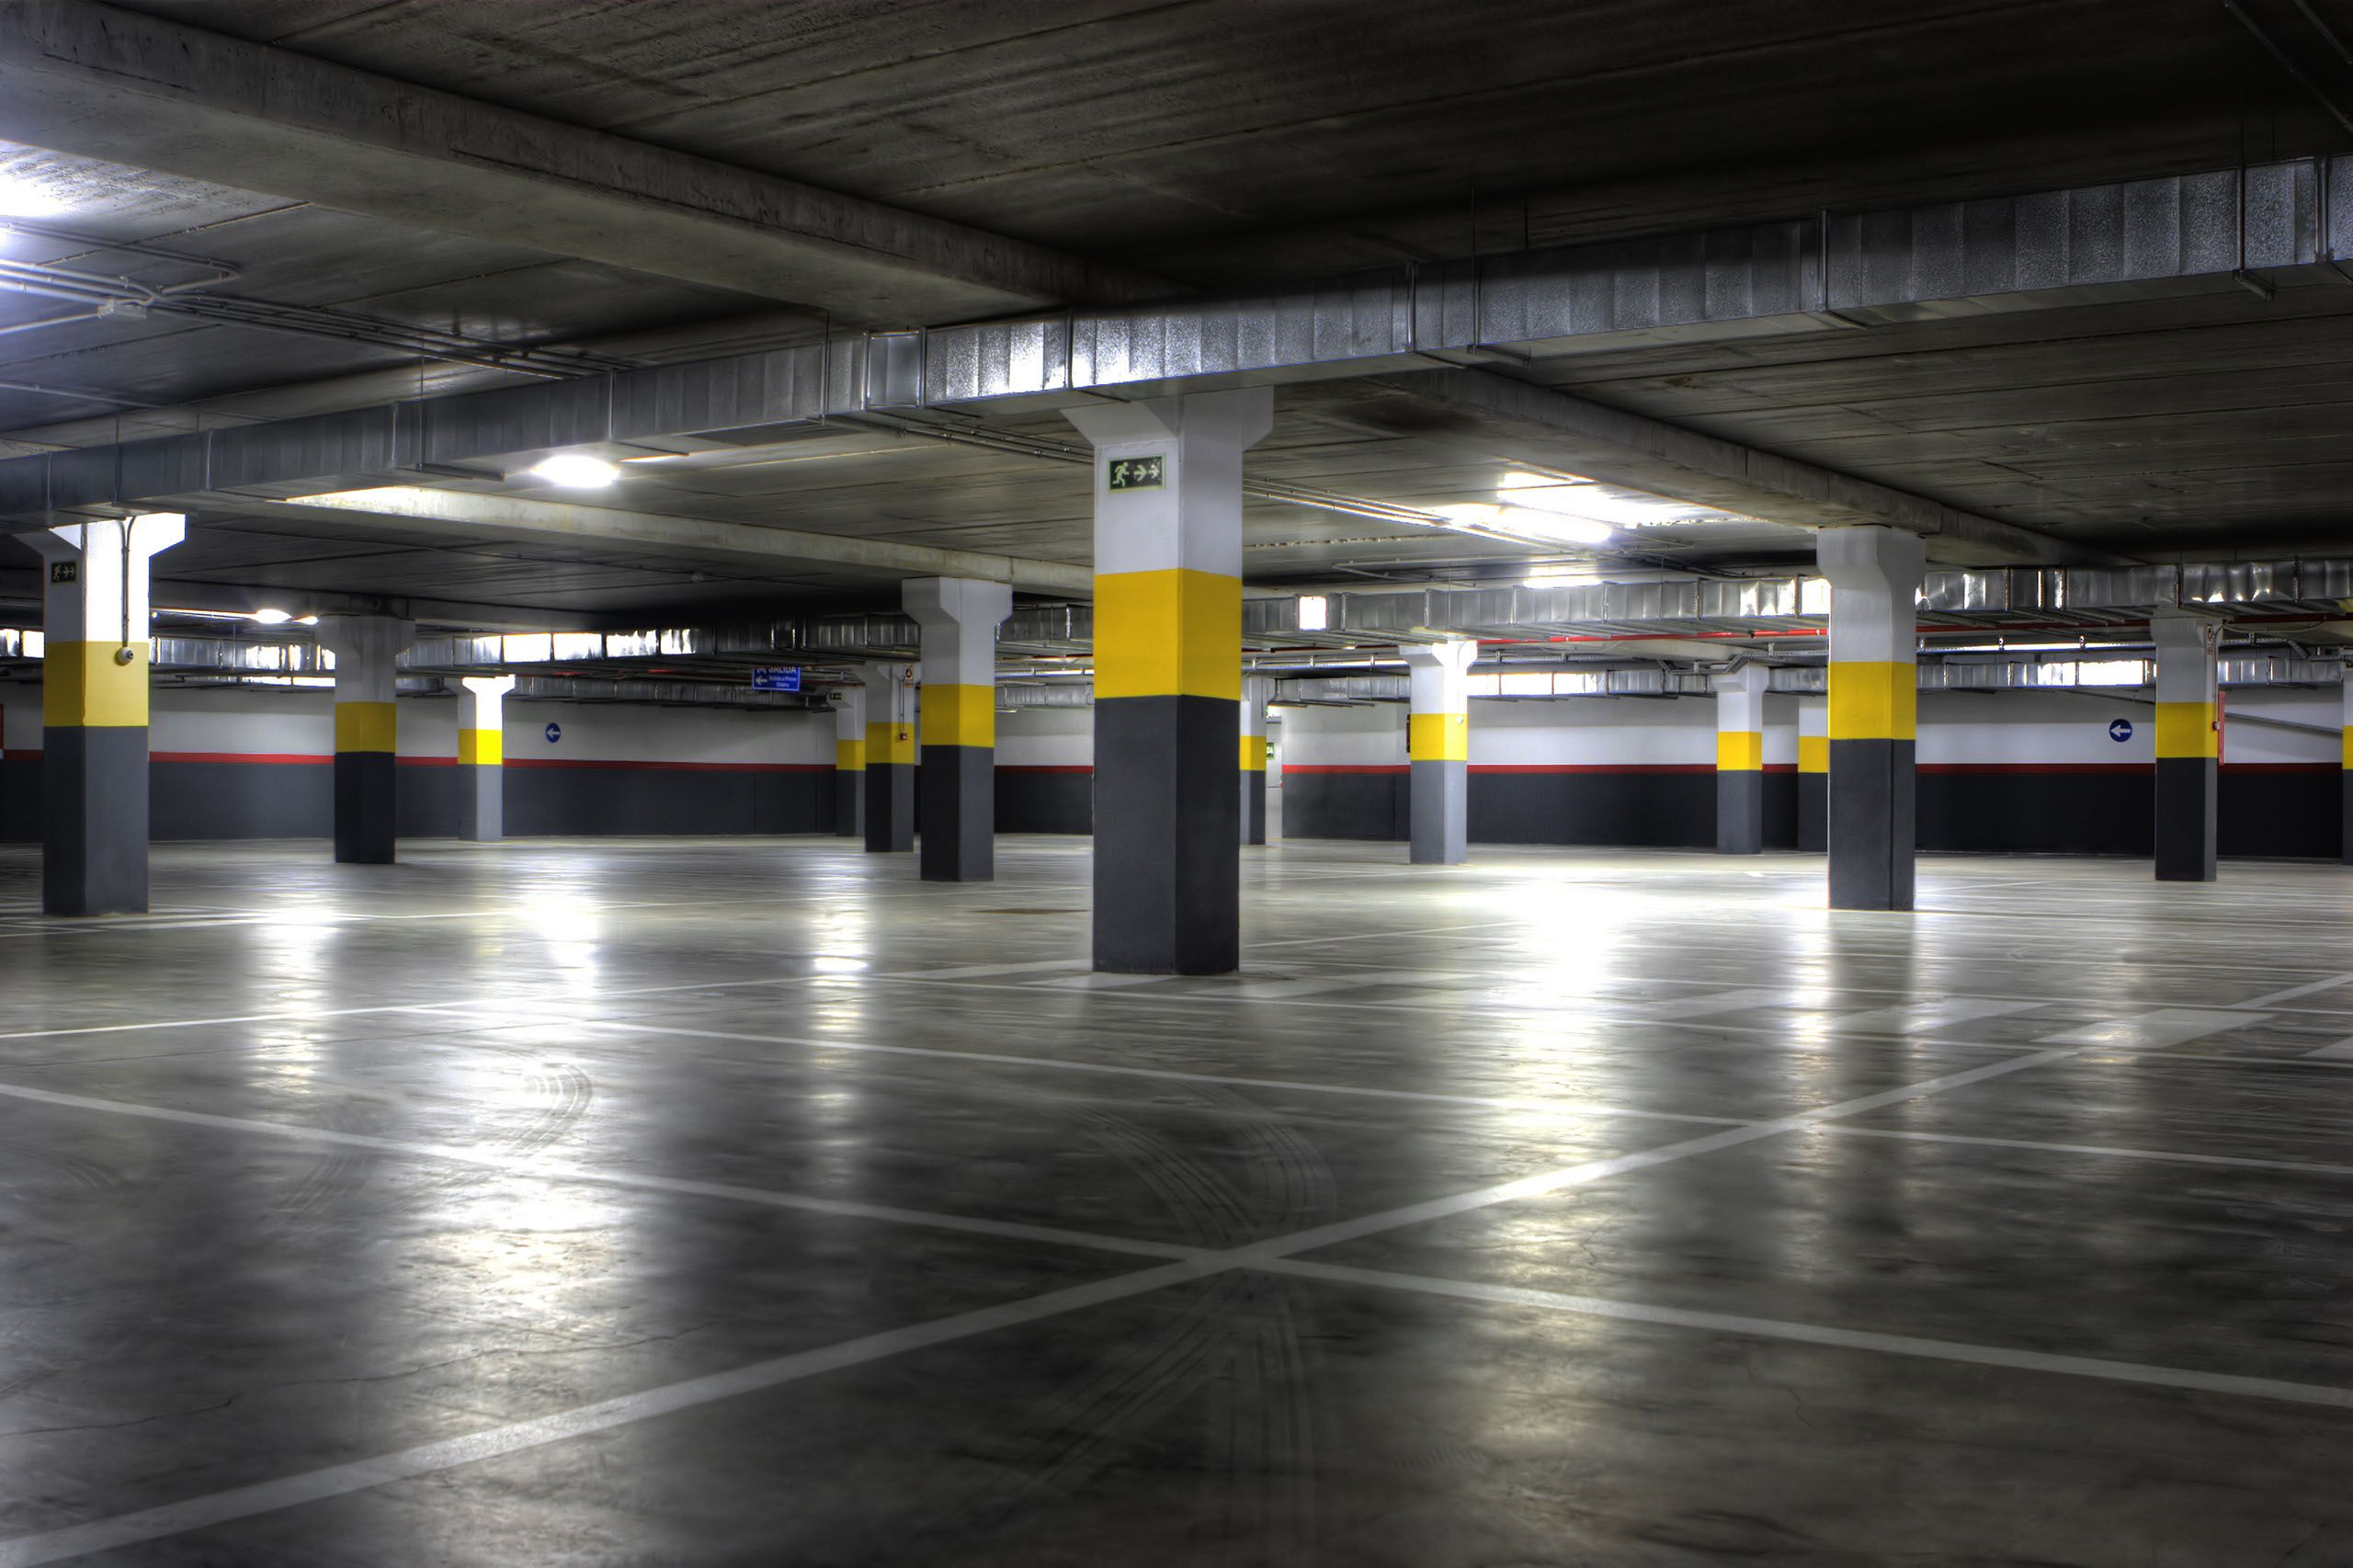 Underground Garage Cleaning Is Essential Mostly For Shopping Malls Airports Office Buildings Amongst Others C In 2020 Underground Garage Parking Garage Clean Garage